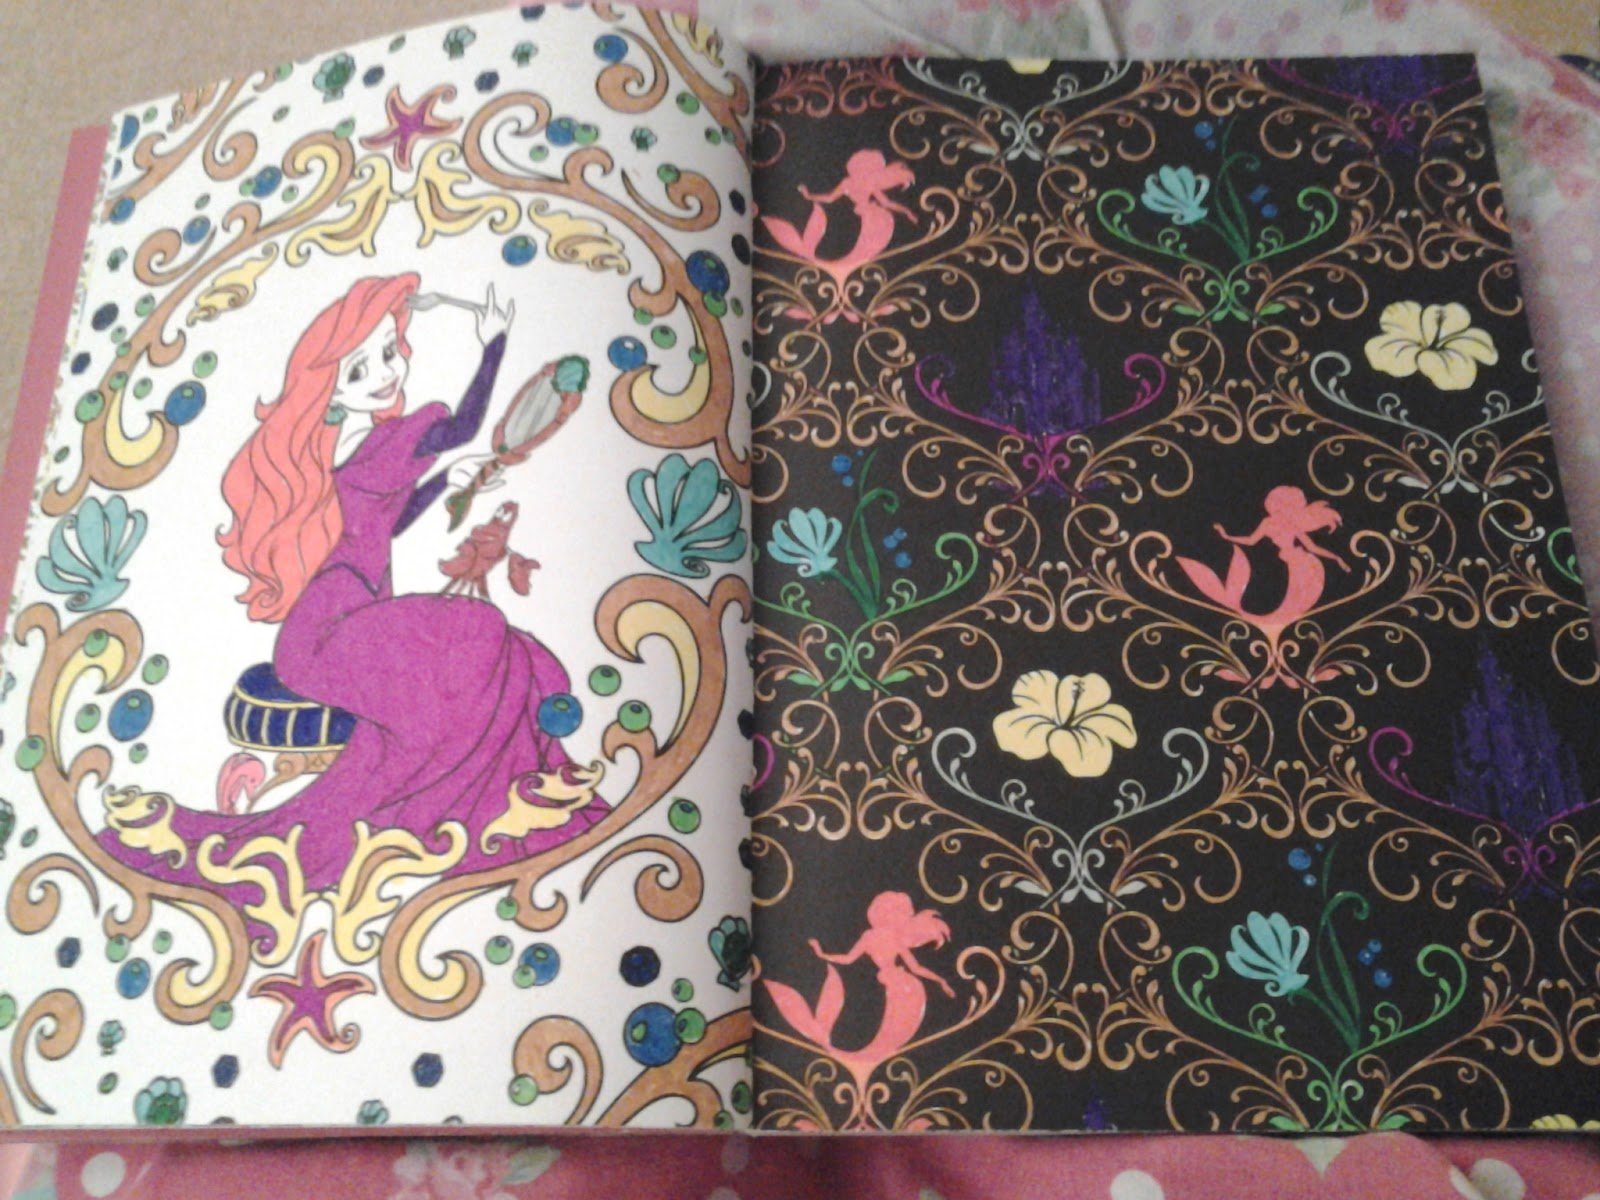 Disney princess art therapy colouring book - I Ve Been Having Fun Decorating Tiara S And Bringing Colour To Both Ariel And Mulan In My Disney Princess Art Therapy Book